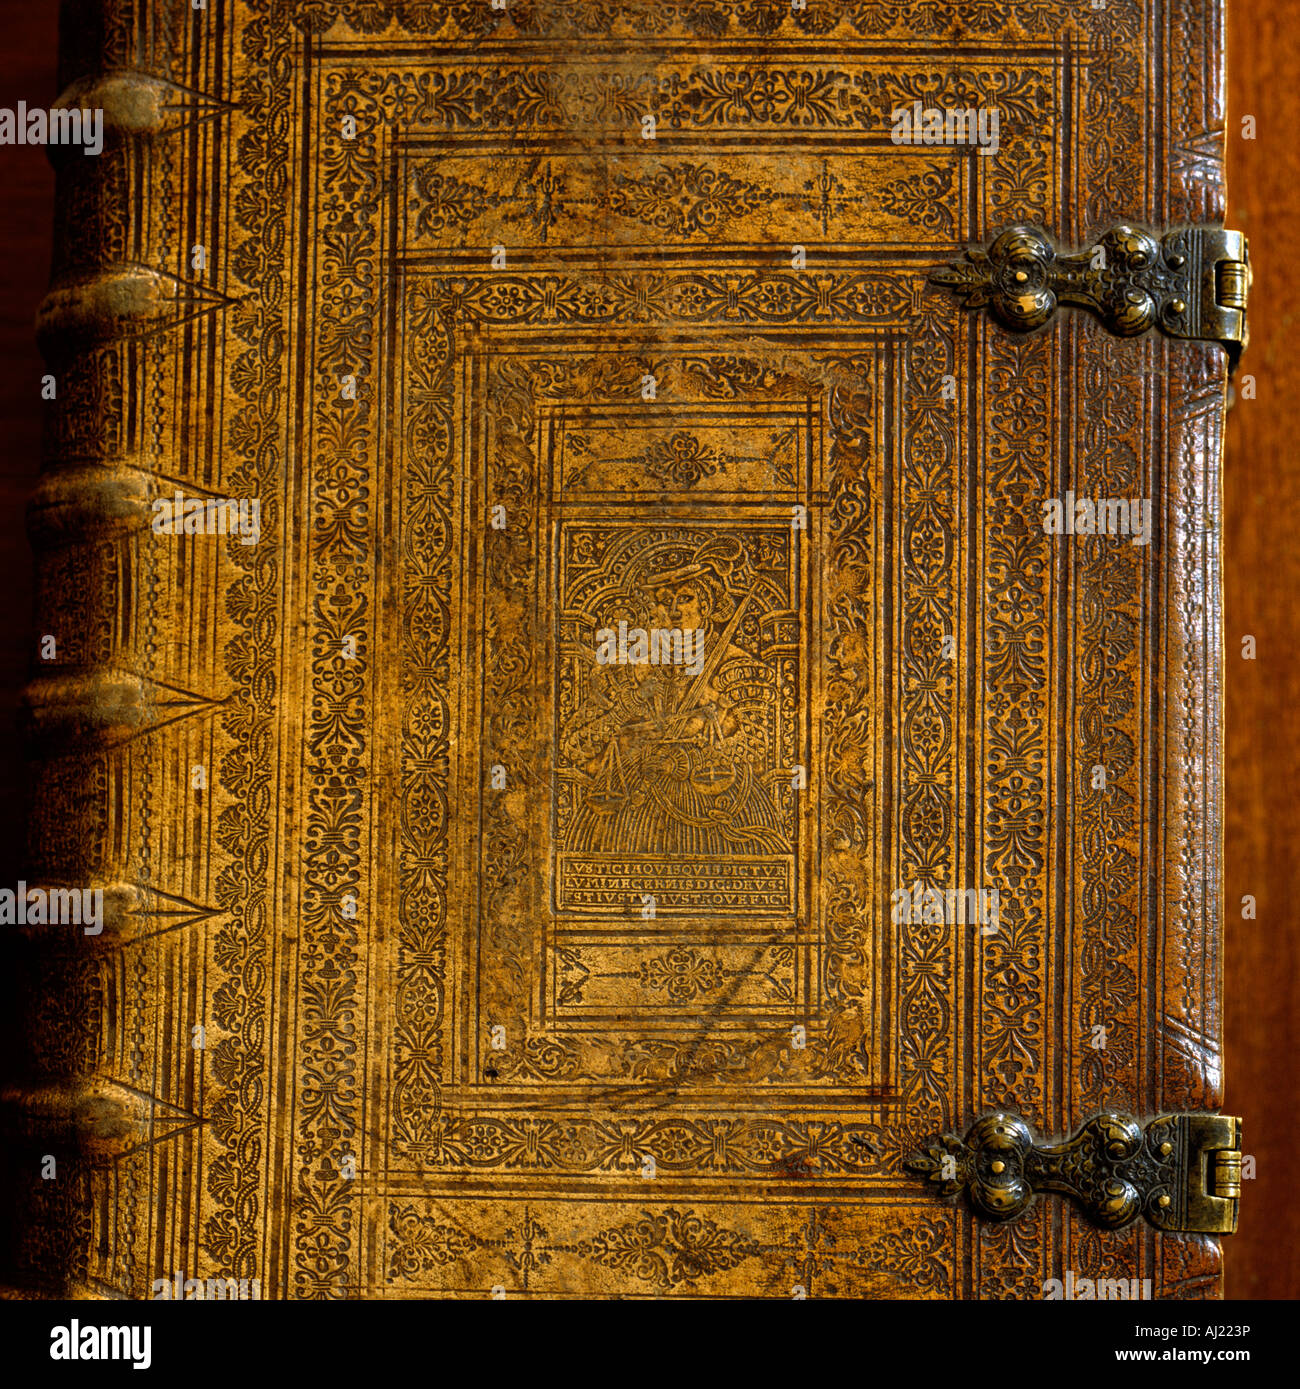 Book Cover Stock Photography : Ornate antique book cover with metal clasp stock photo